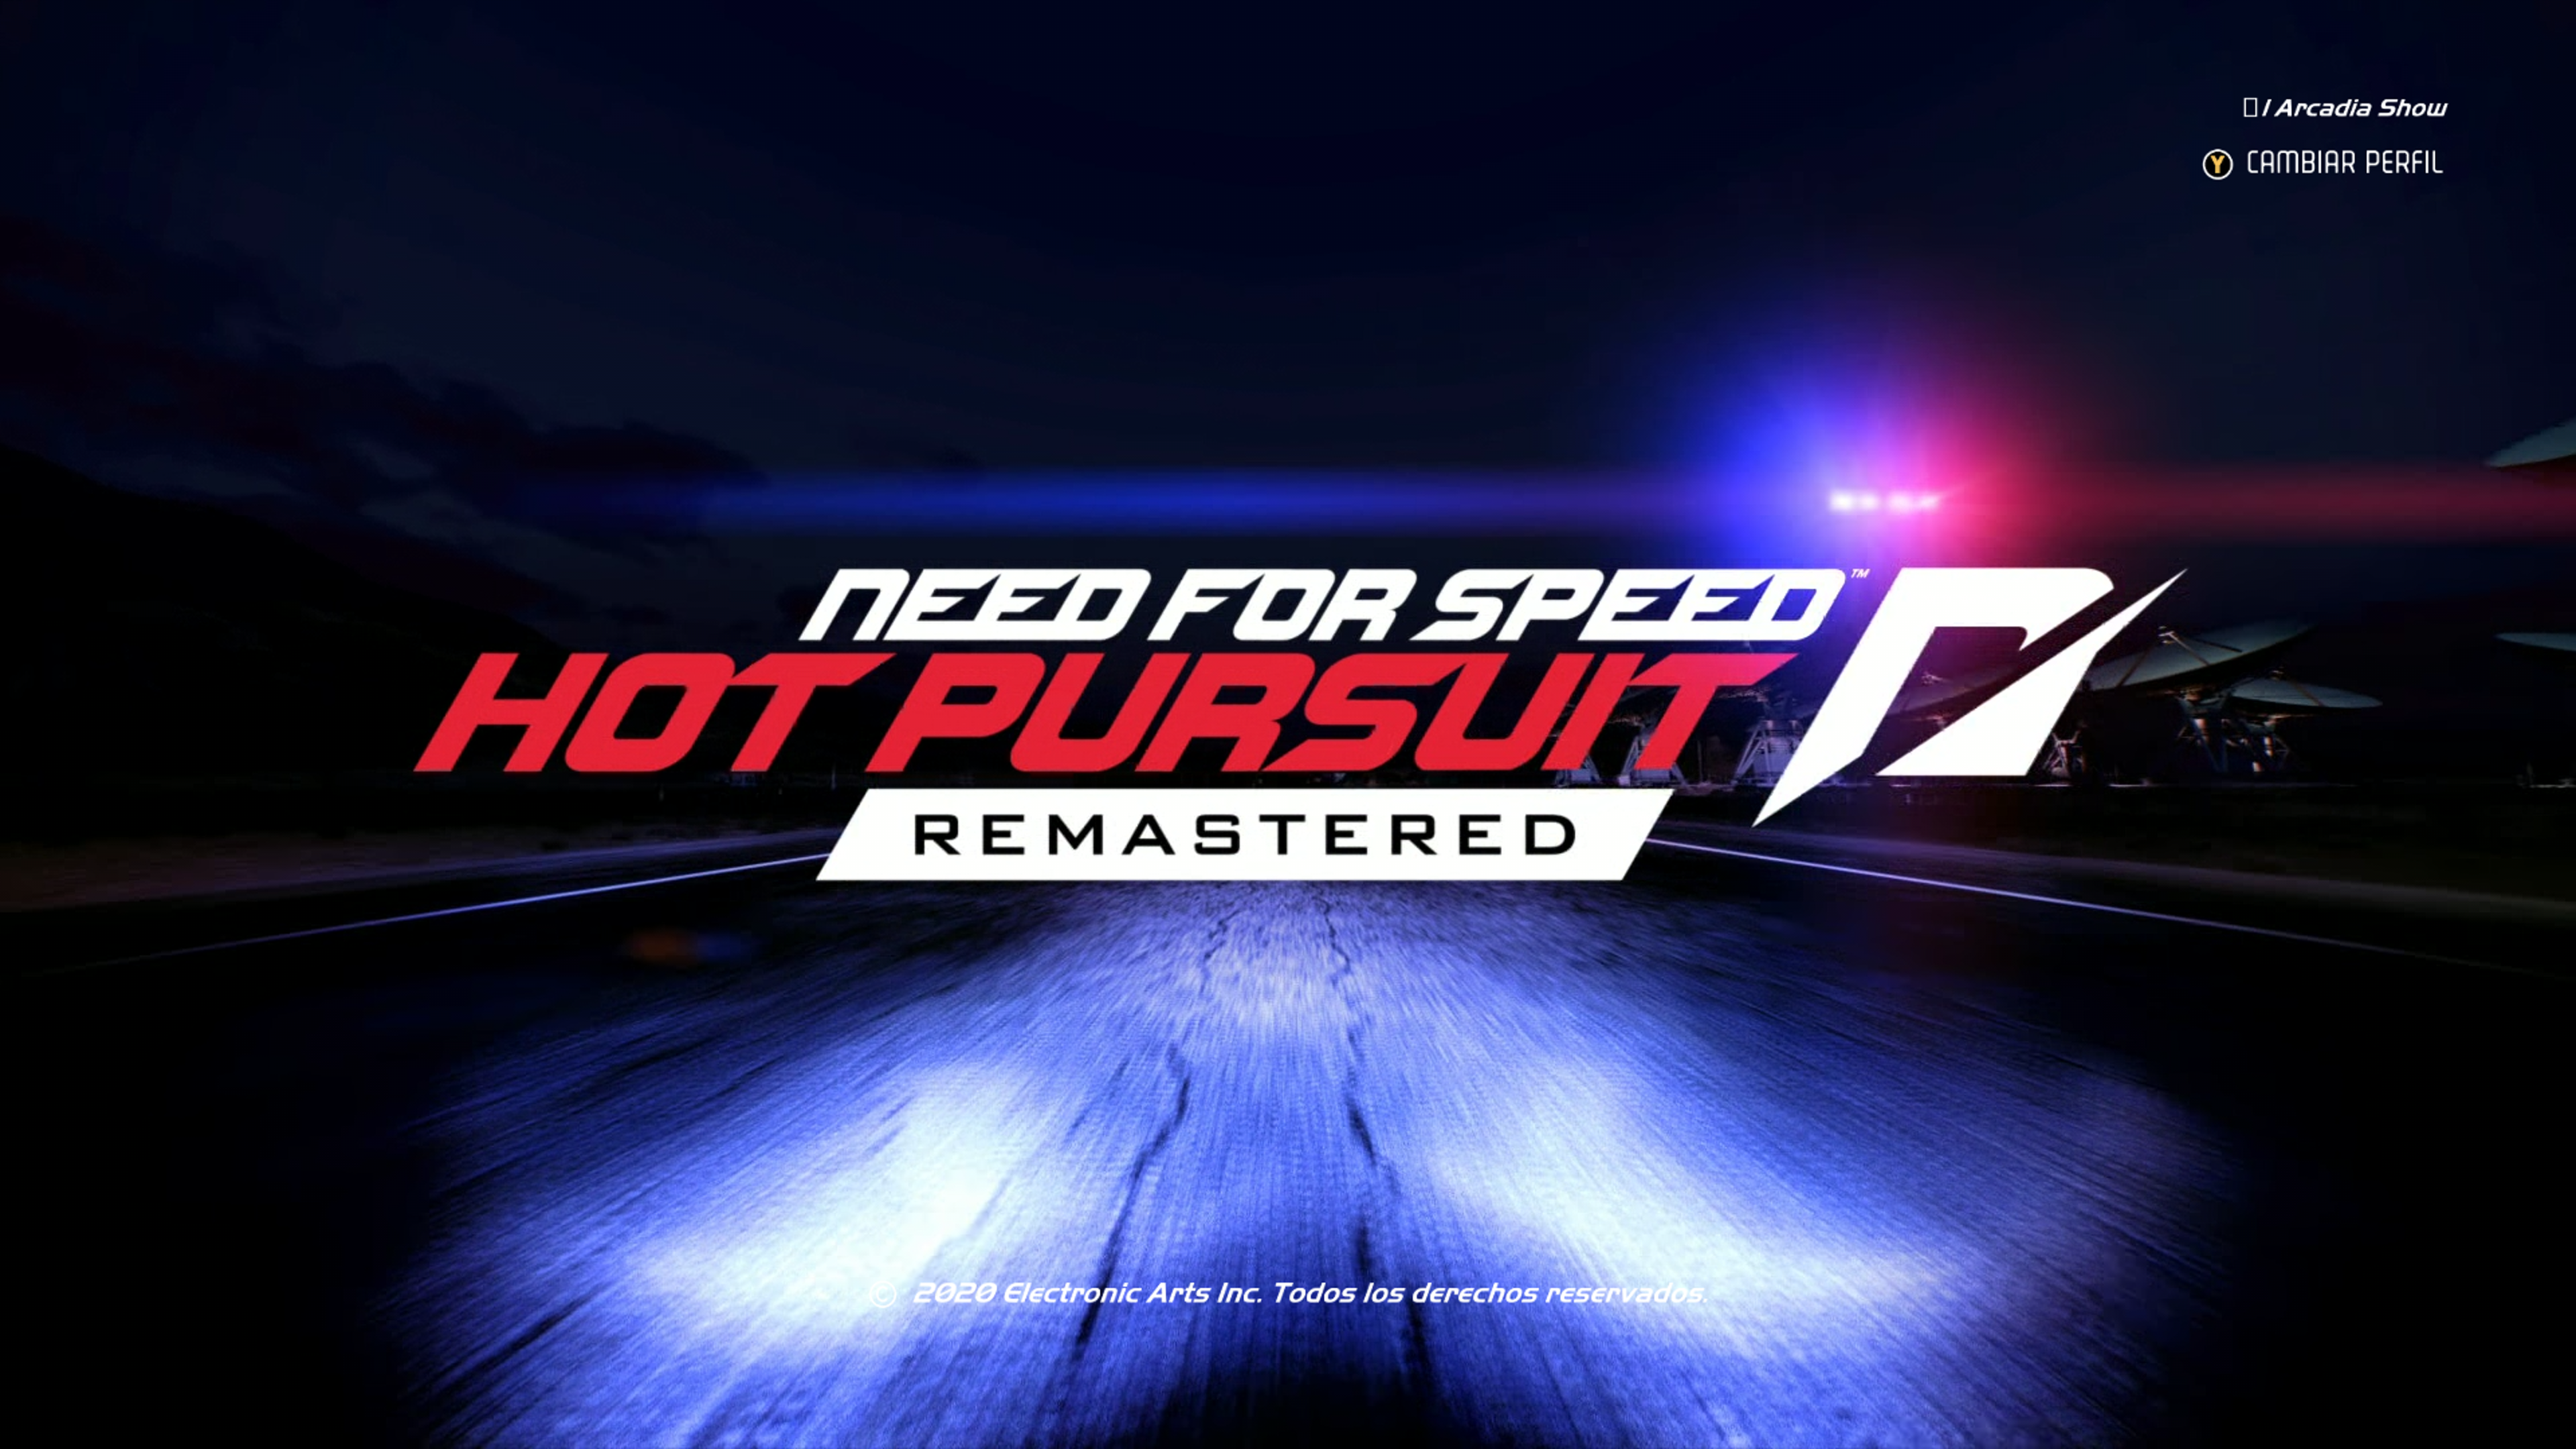 puhbori9t6_Need For Speed™ Hot Pursuit Remastered 2020-11-17 17-35-12.png